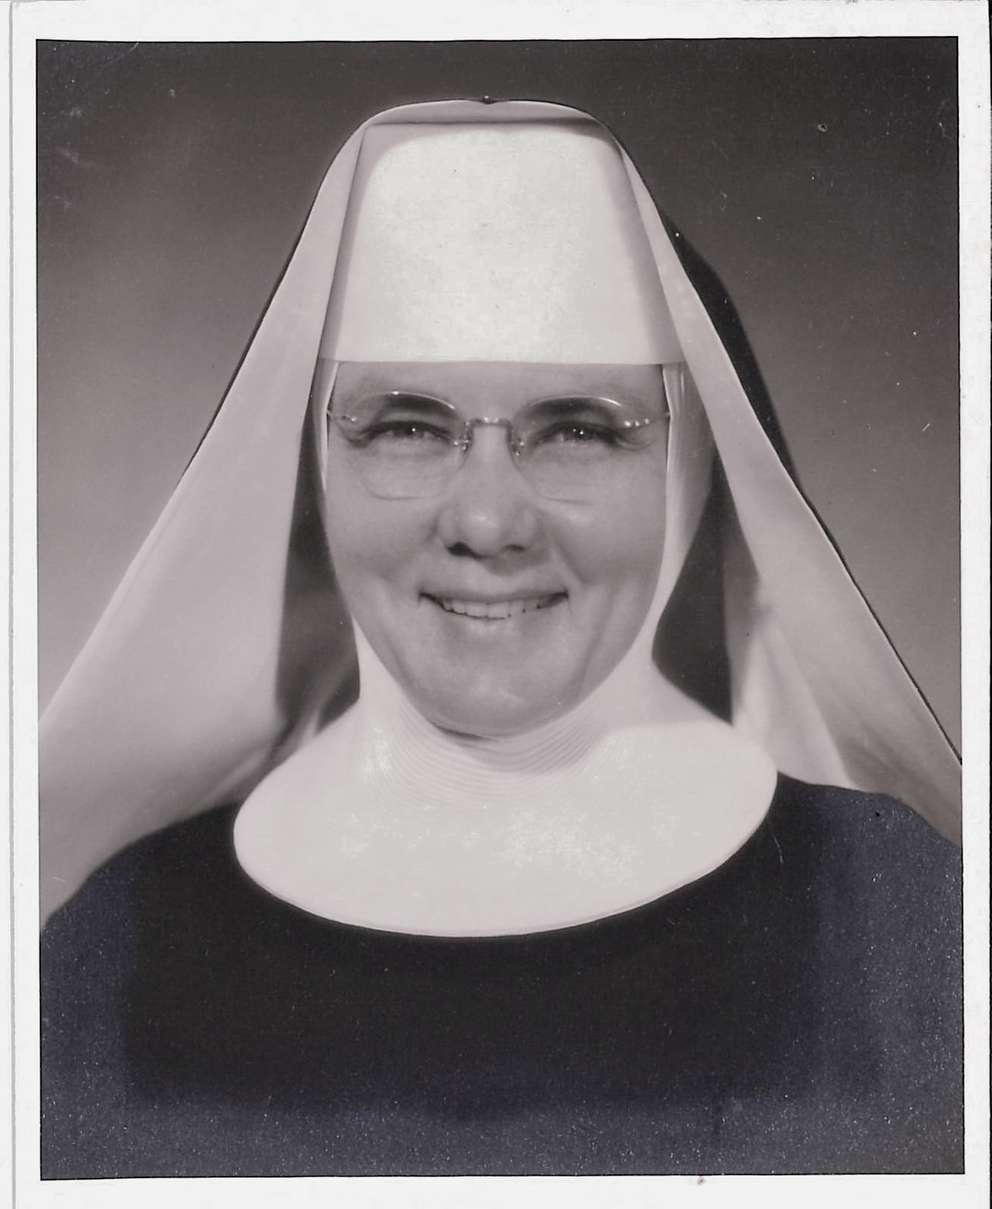 After Sister Helen Lange retired, she worked as pastoral minister at Bon Secour Maria Manor nursing home in St. Petersburg and Our Lady of the Snows in Belleville, Ill. She also wrote a memoir, Kicking the Habit. (Photo courtesy Faith Pridmore)